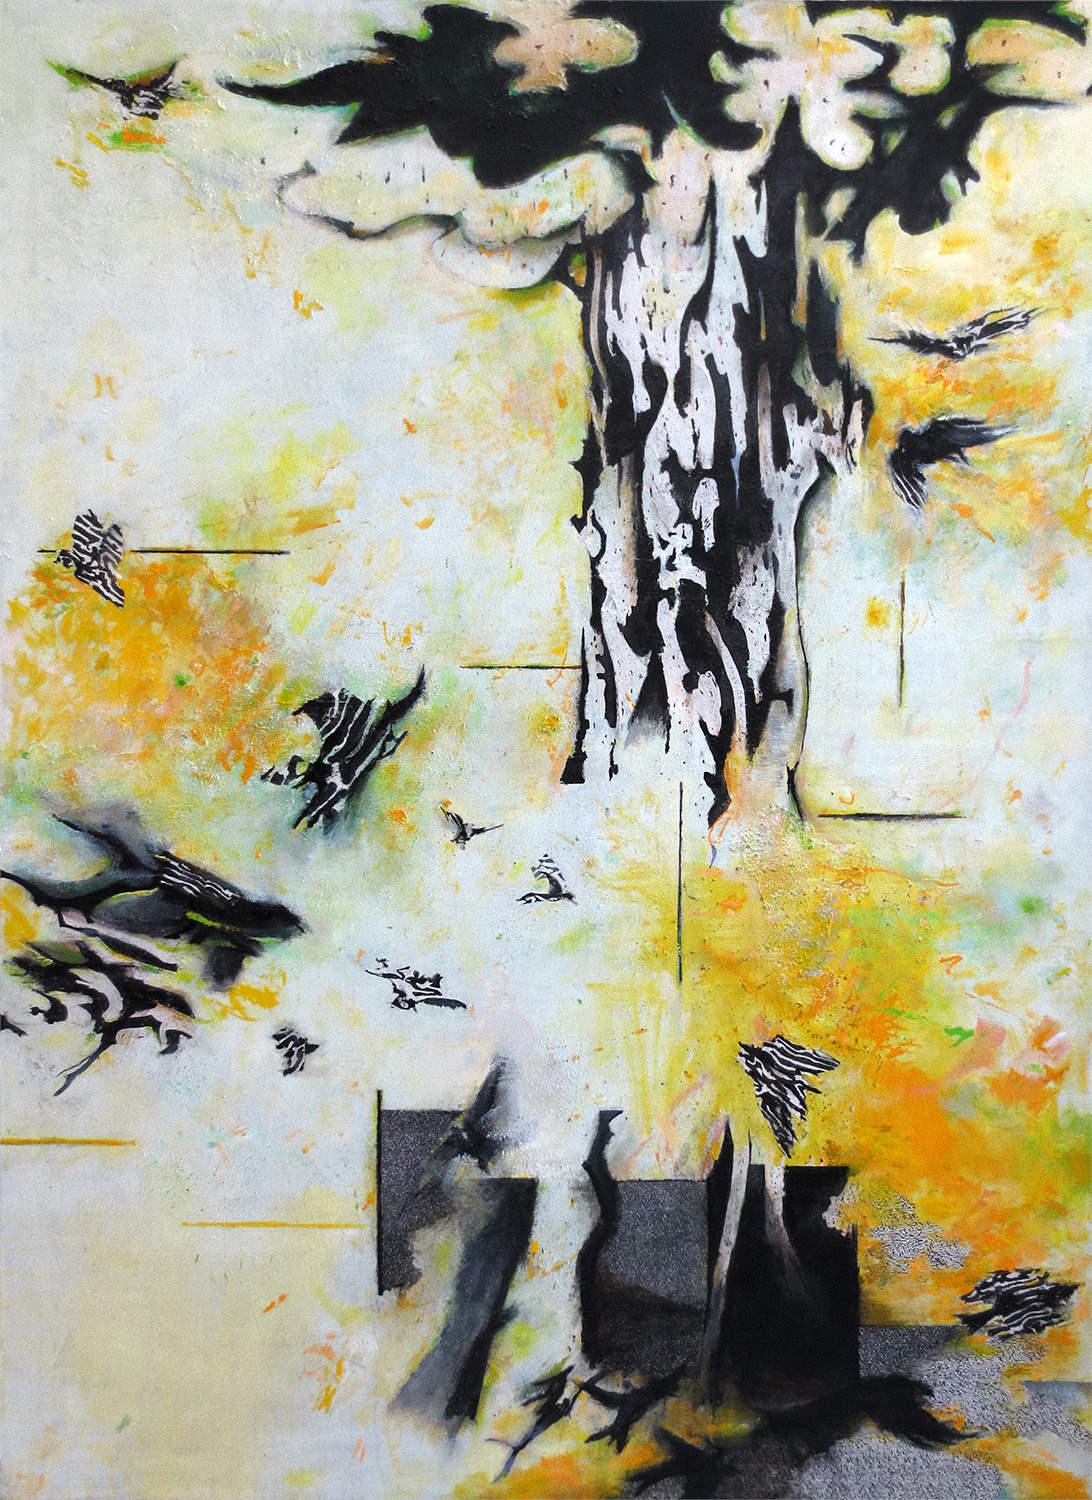 Summer Light With Tree And Birds  2006-17, 213 x 183 cm